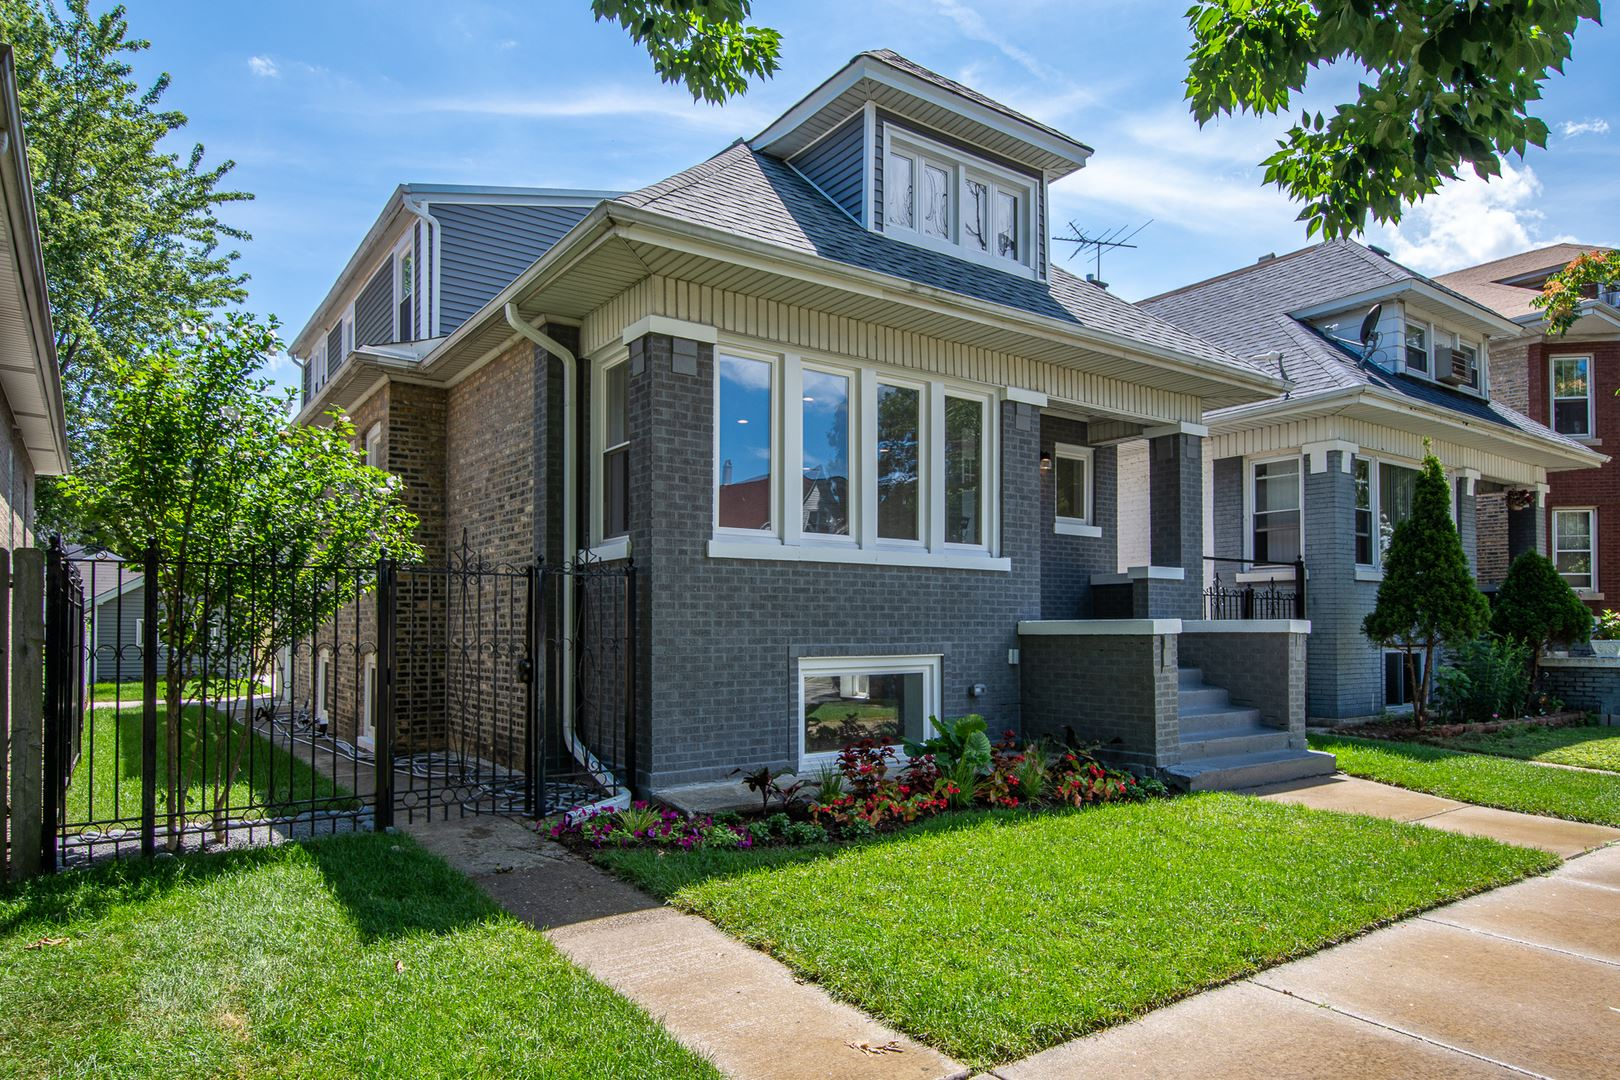 4707 W Deming Place, Chicago, IL 60639 - #: 10759042